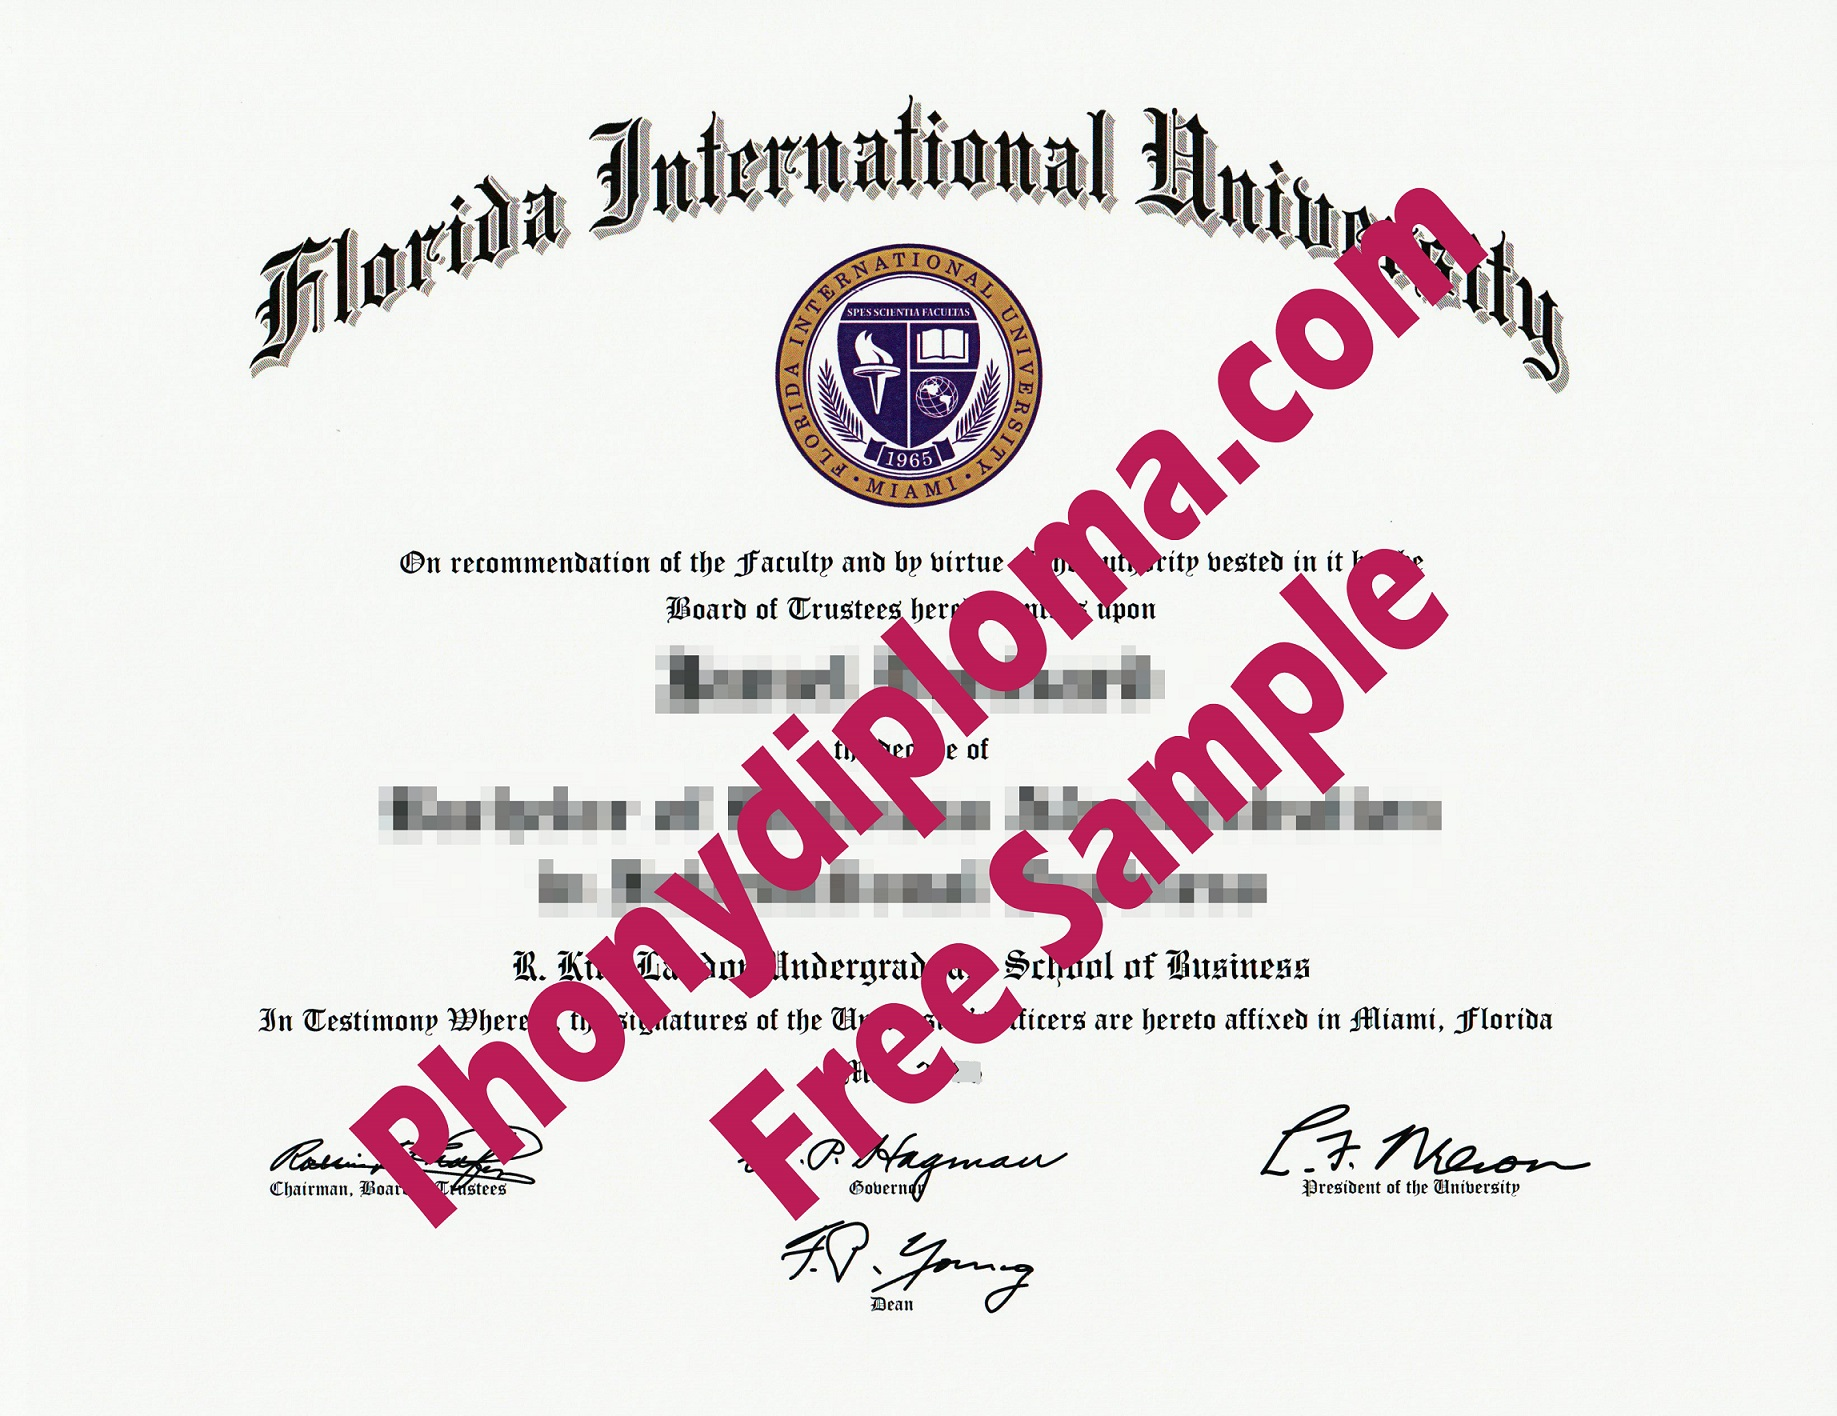 Clc Florida International University Fl Fiu Free Sample From Phonydiploma